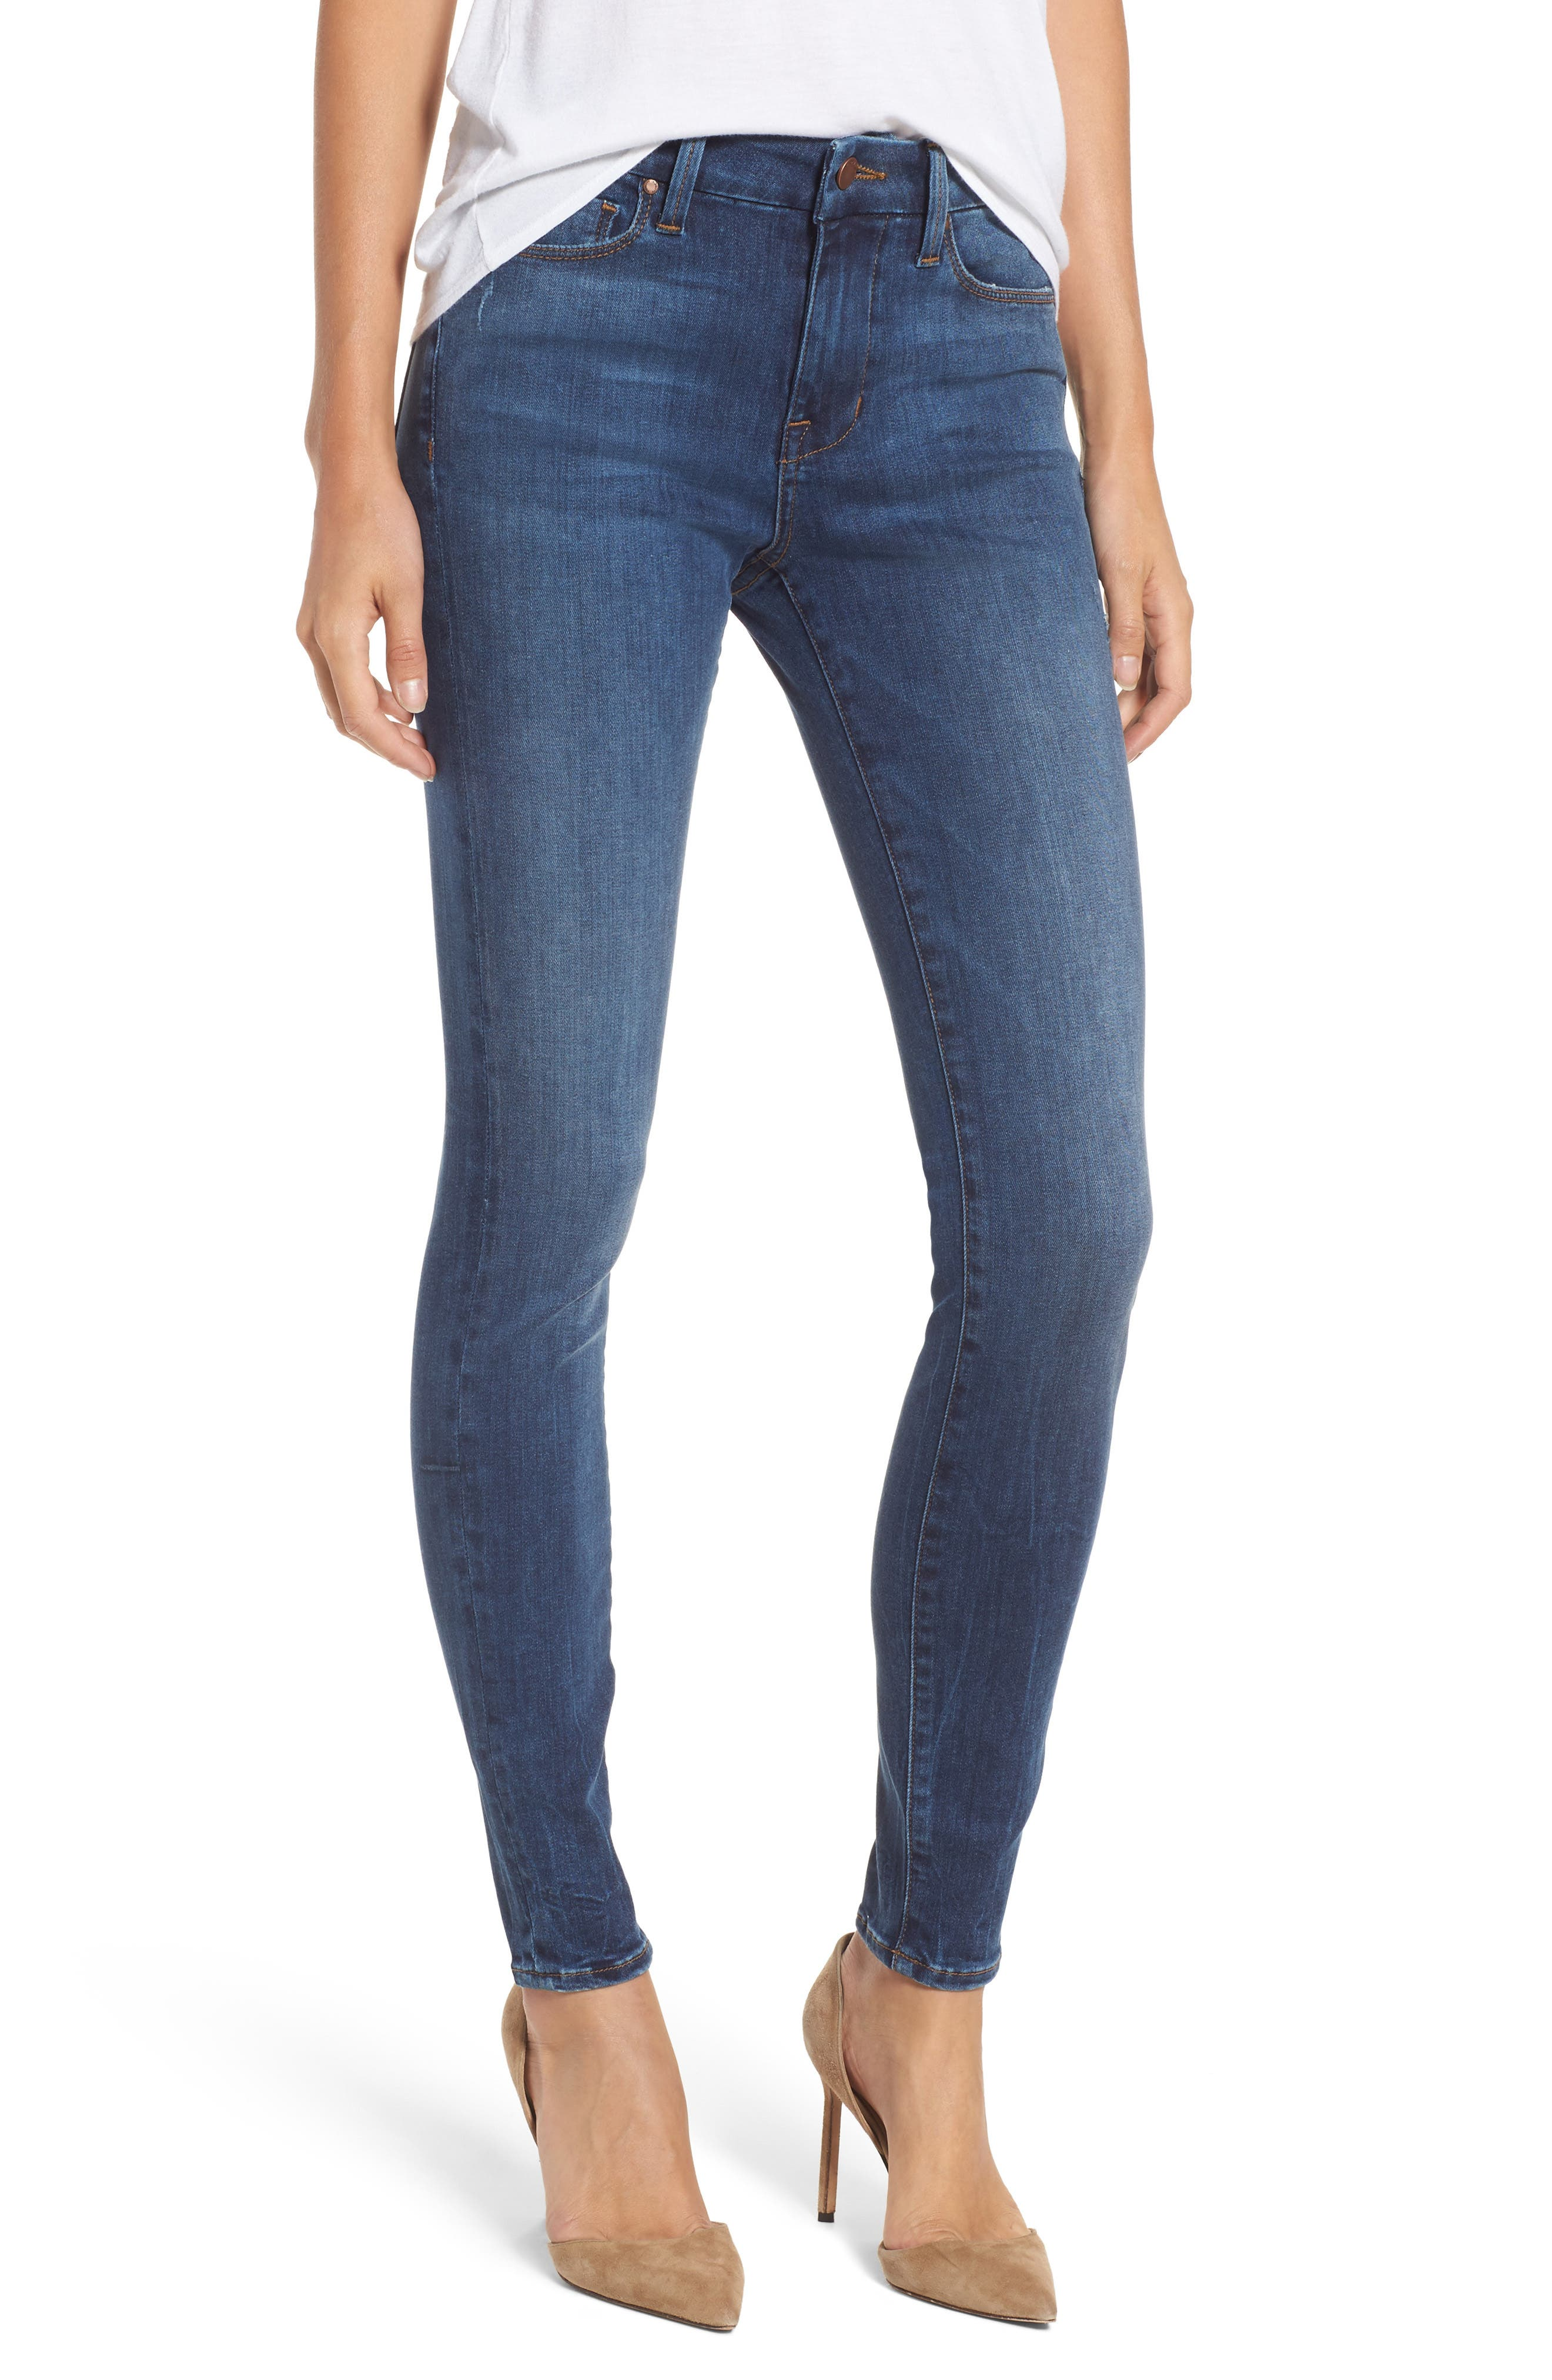 Belvedere Skinny Jeans,                             Main thumbnail 1, color,